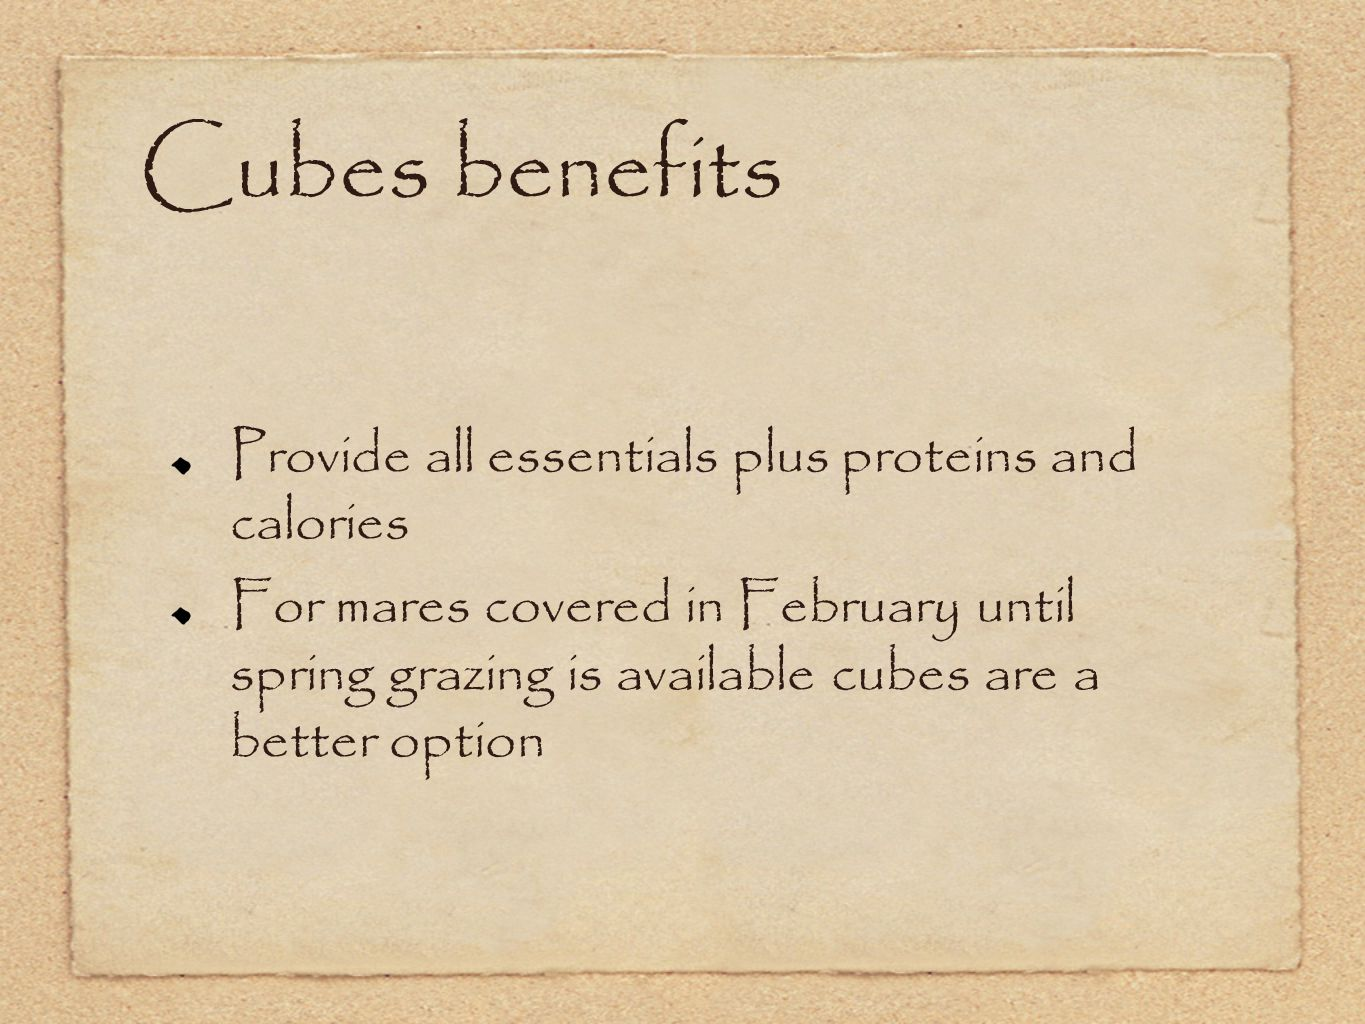 Cubes benefits Provide all essentials plus proteins and calories For mares covered in February until spring grazing is available cubes are a better option